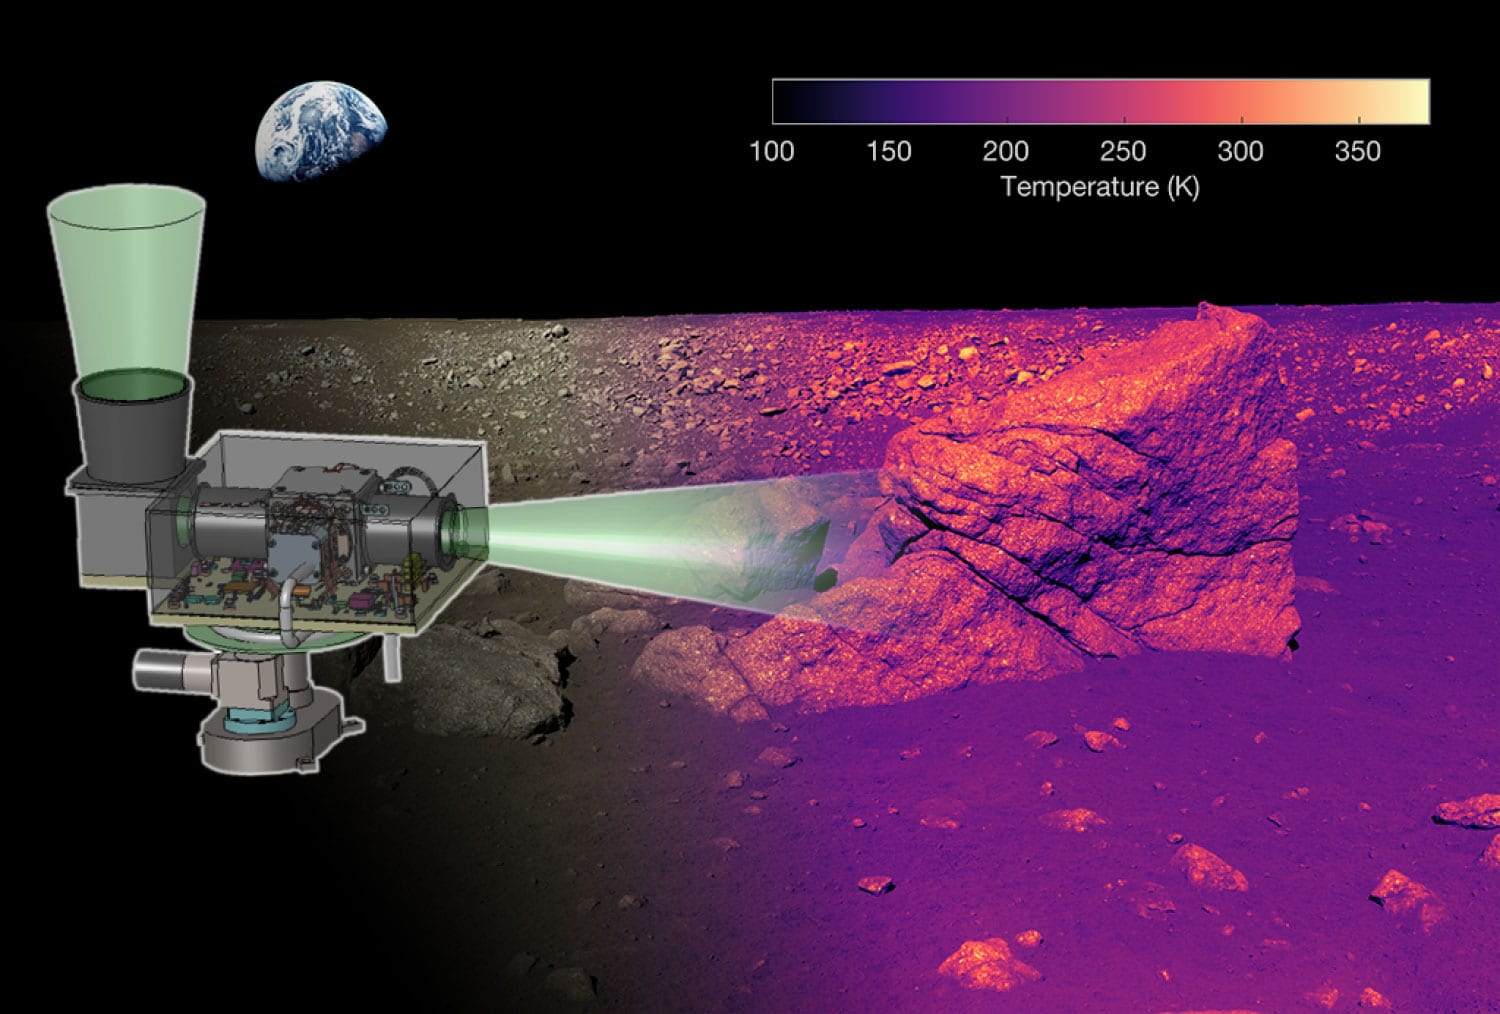 A simulation of the level of detail that L-CIRiS's infrared camera will reveal of the moon's surface. (Credit: Ball Aerospace)